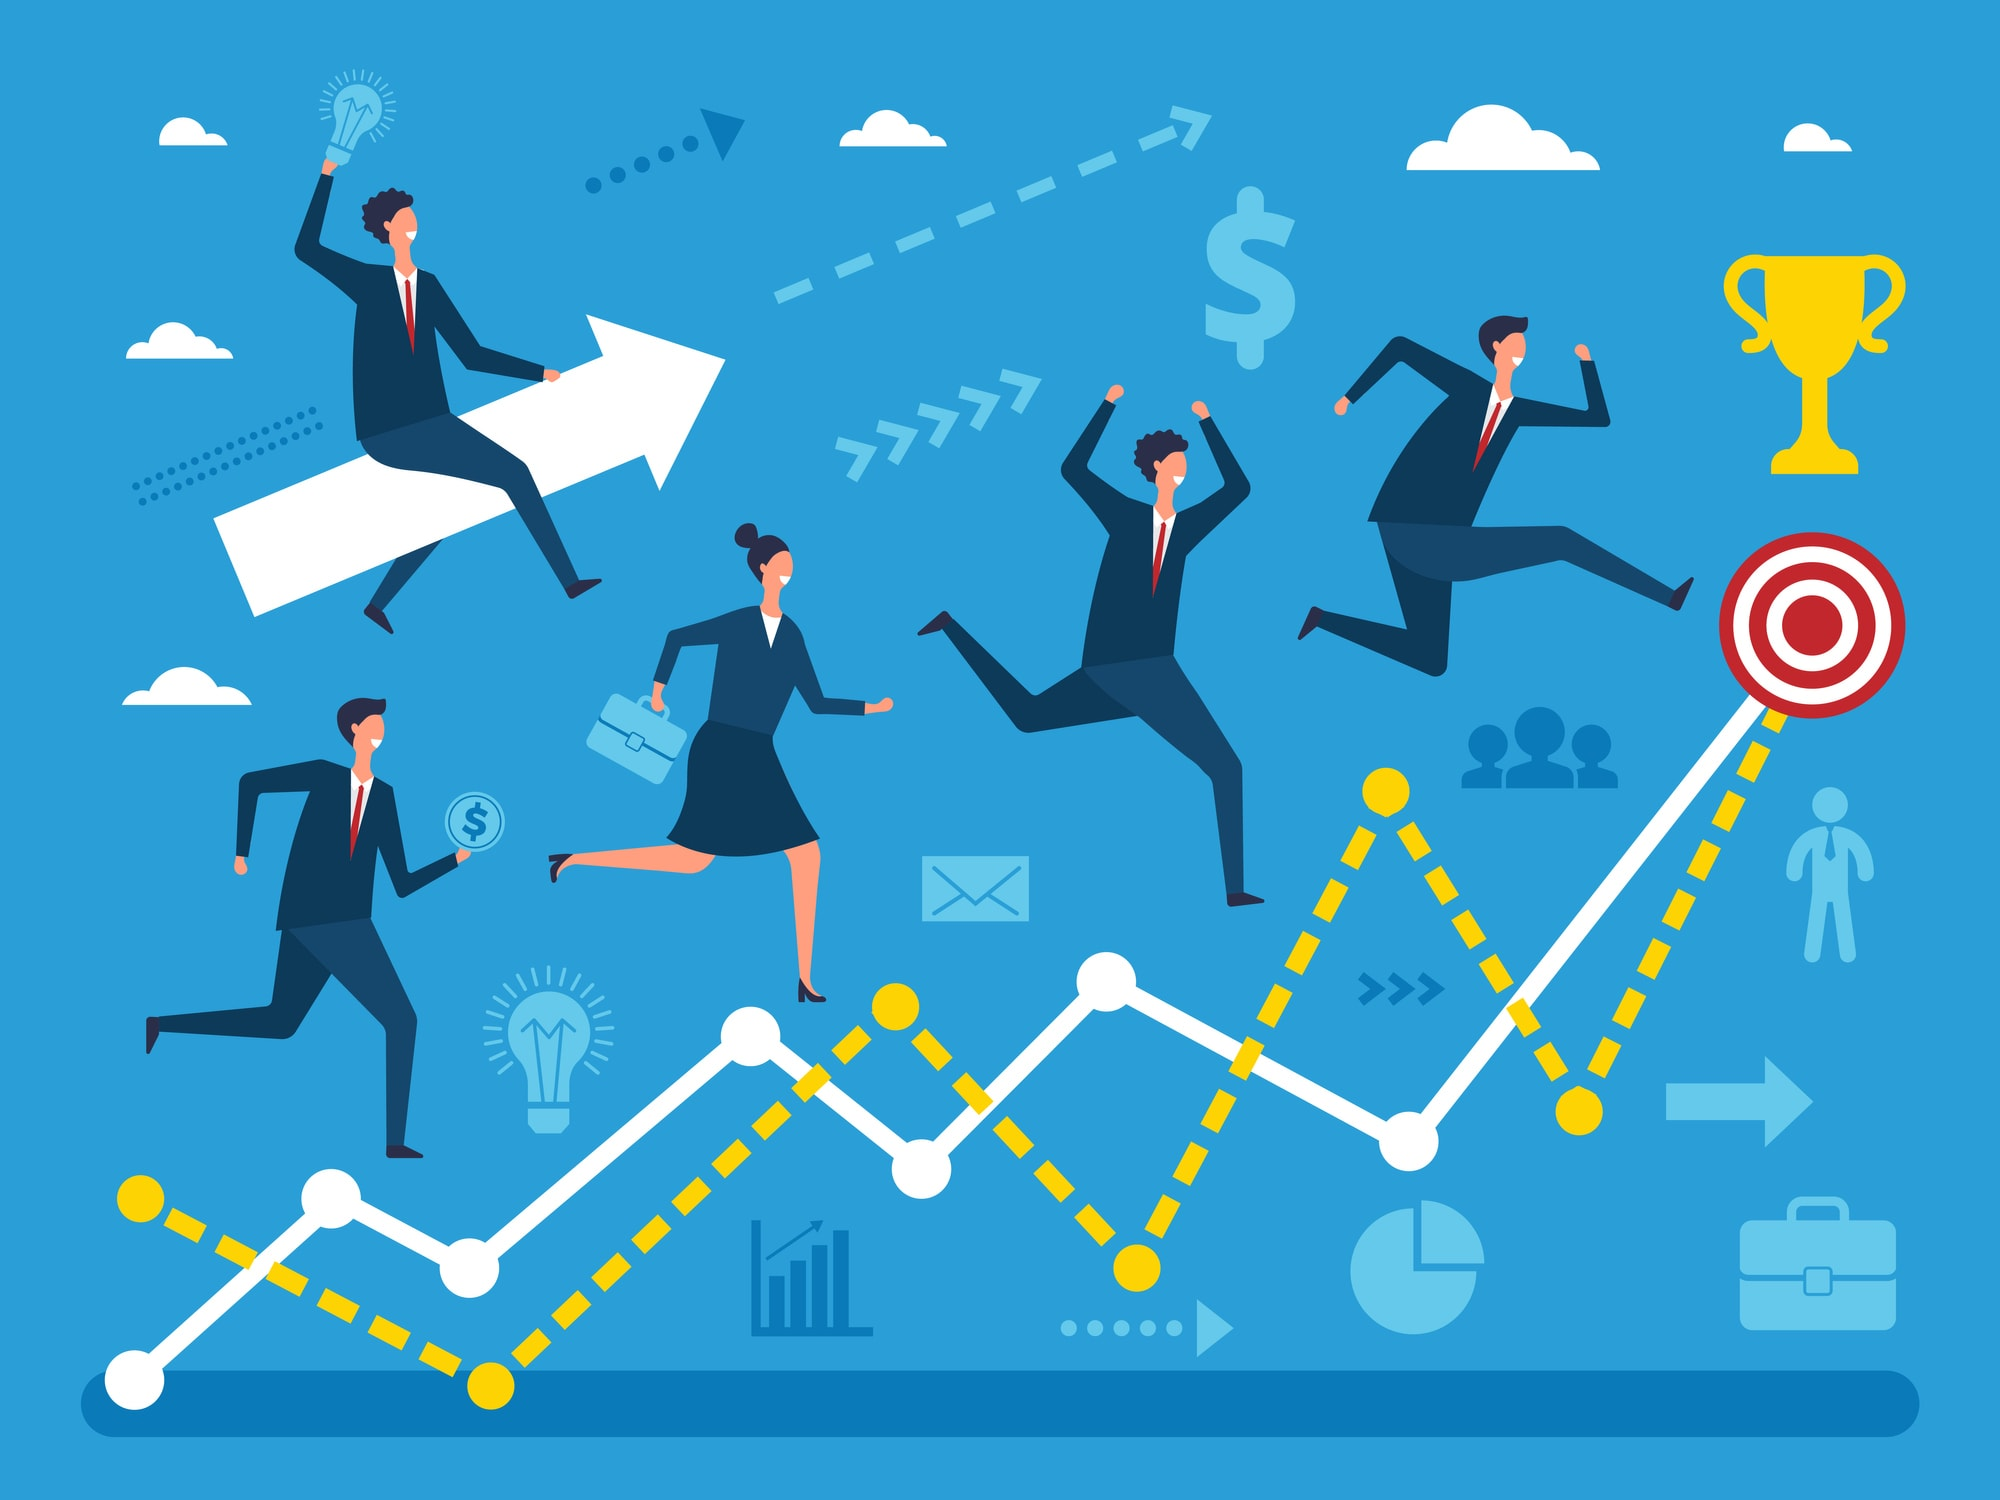 Business concept illustration of various peoples running to big goal. Visualizations of performance steps. Business goal, businessman success run